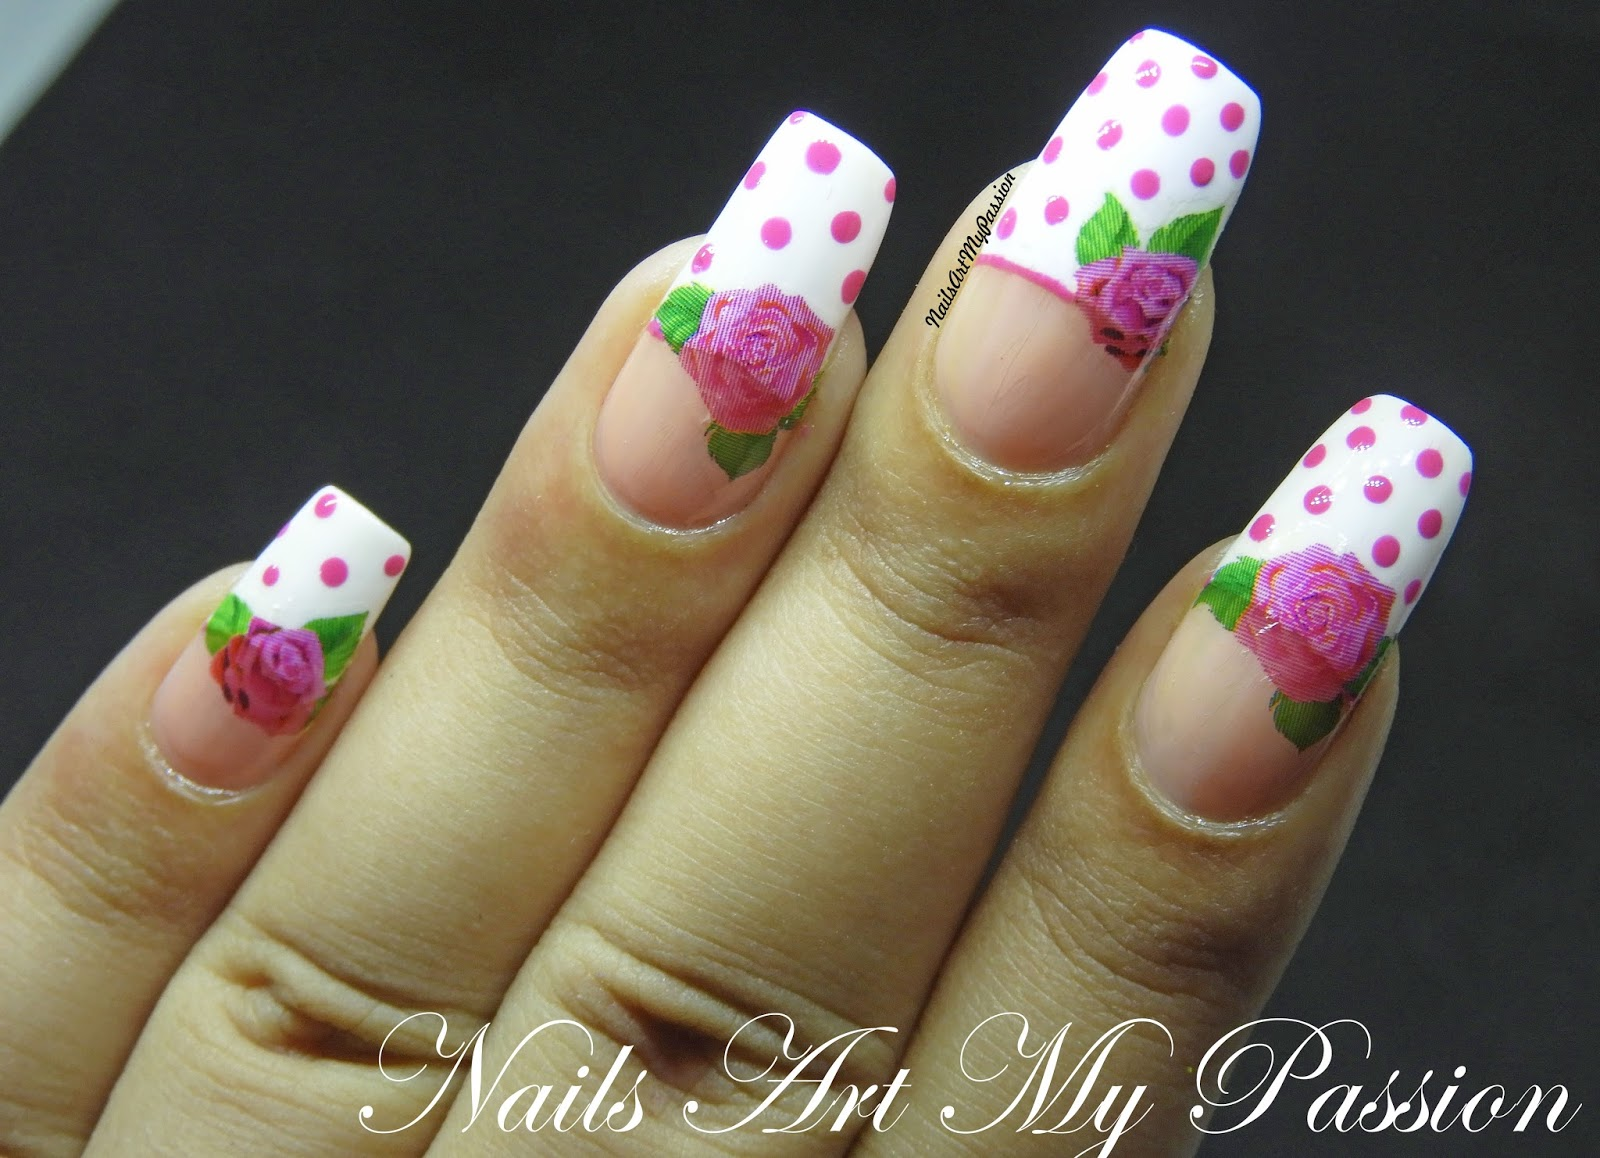 Nail Art My Passion: Naughty Nails Australia Water Decals Review ...